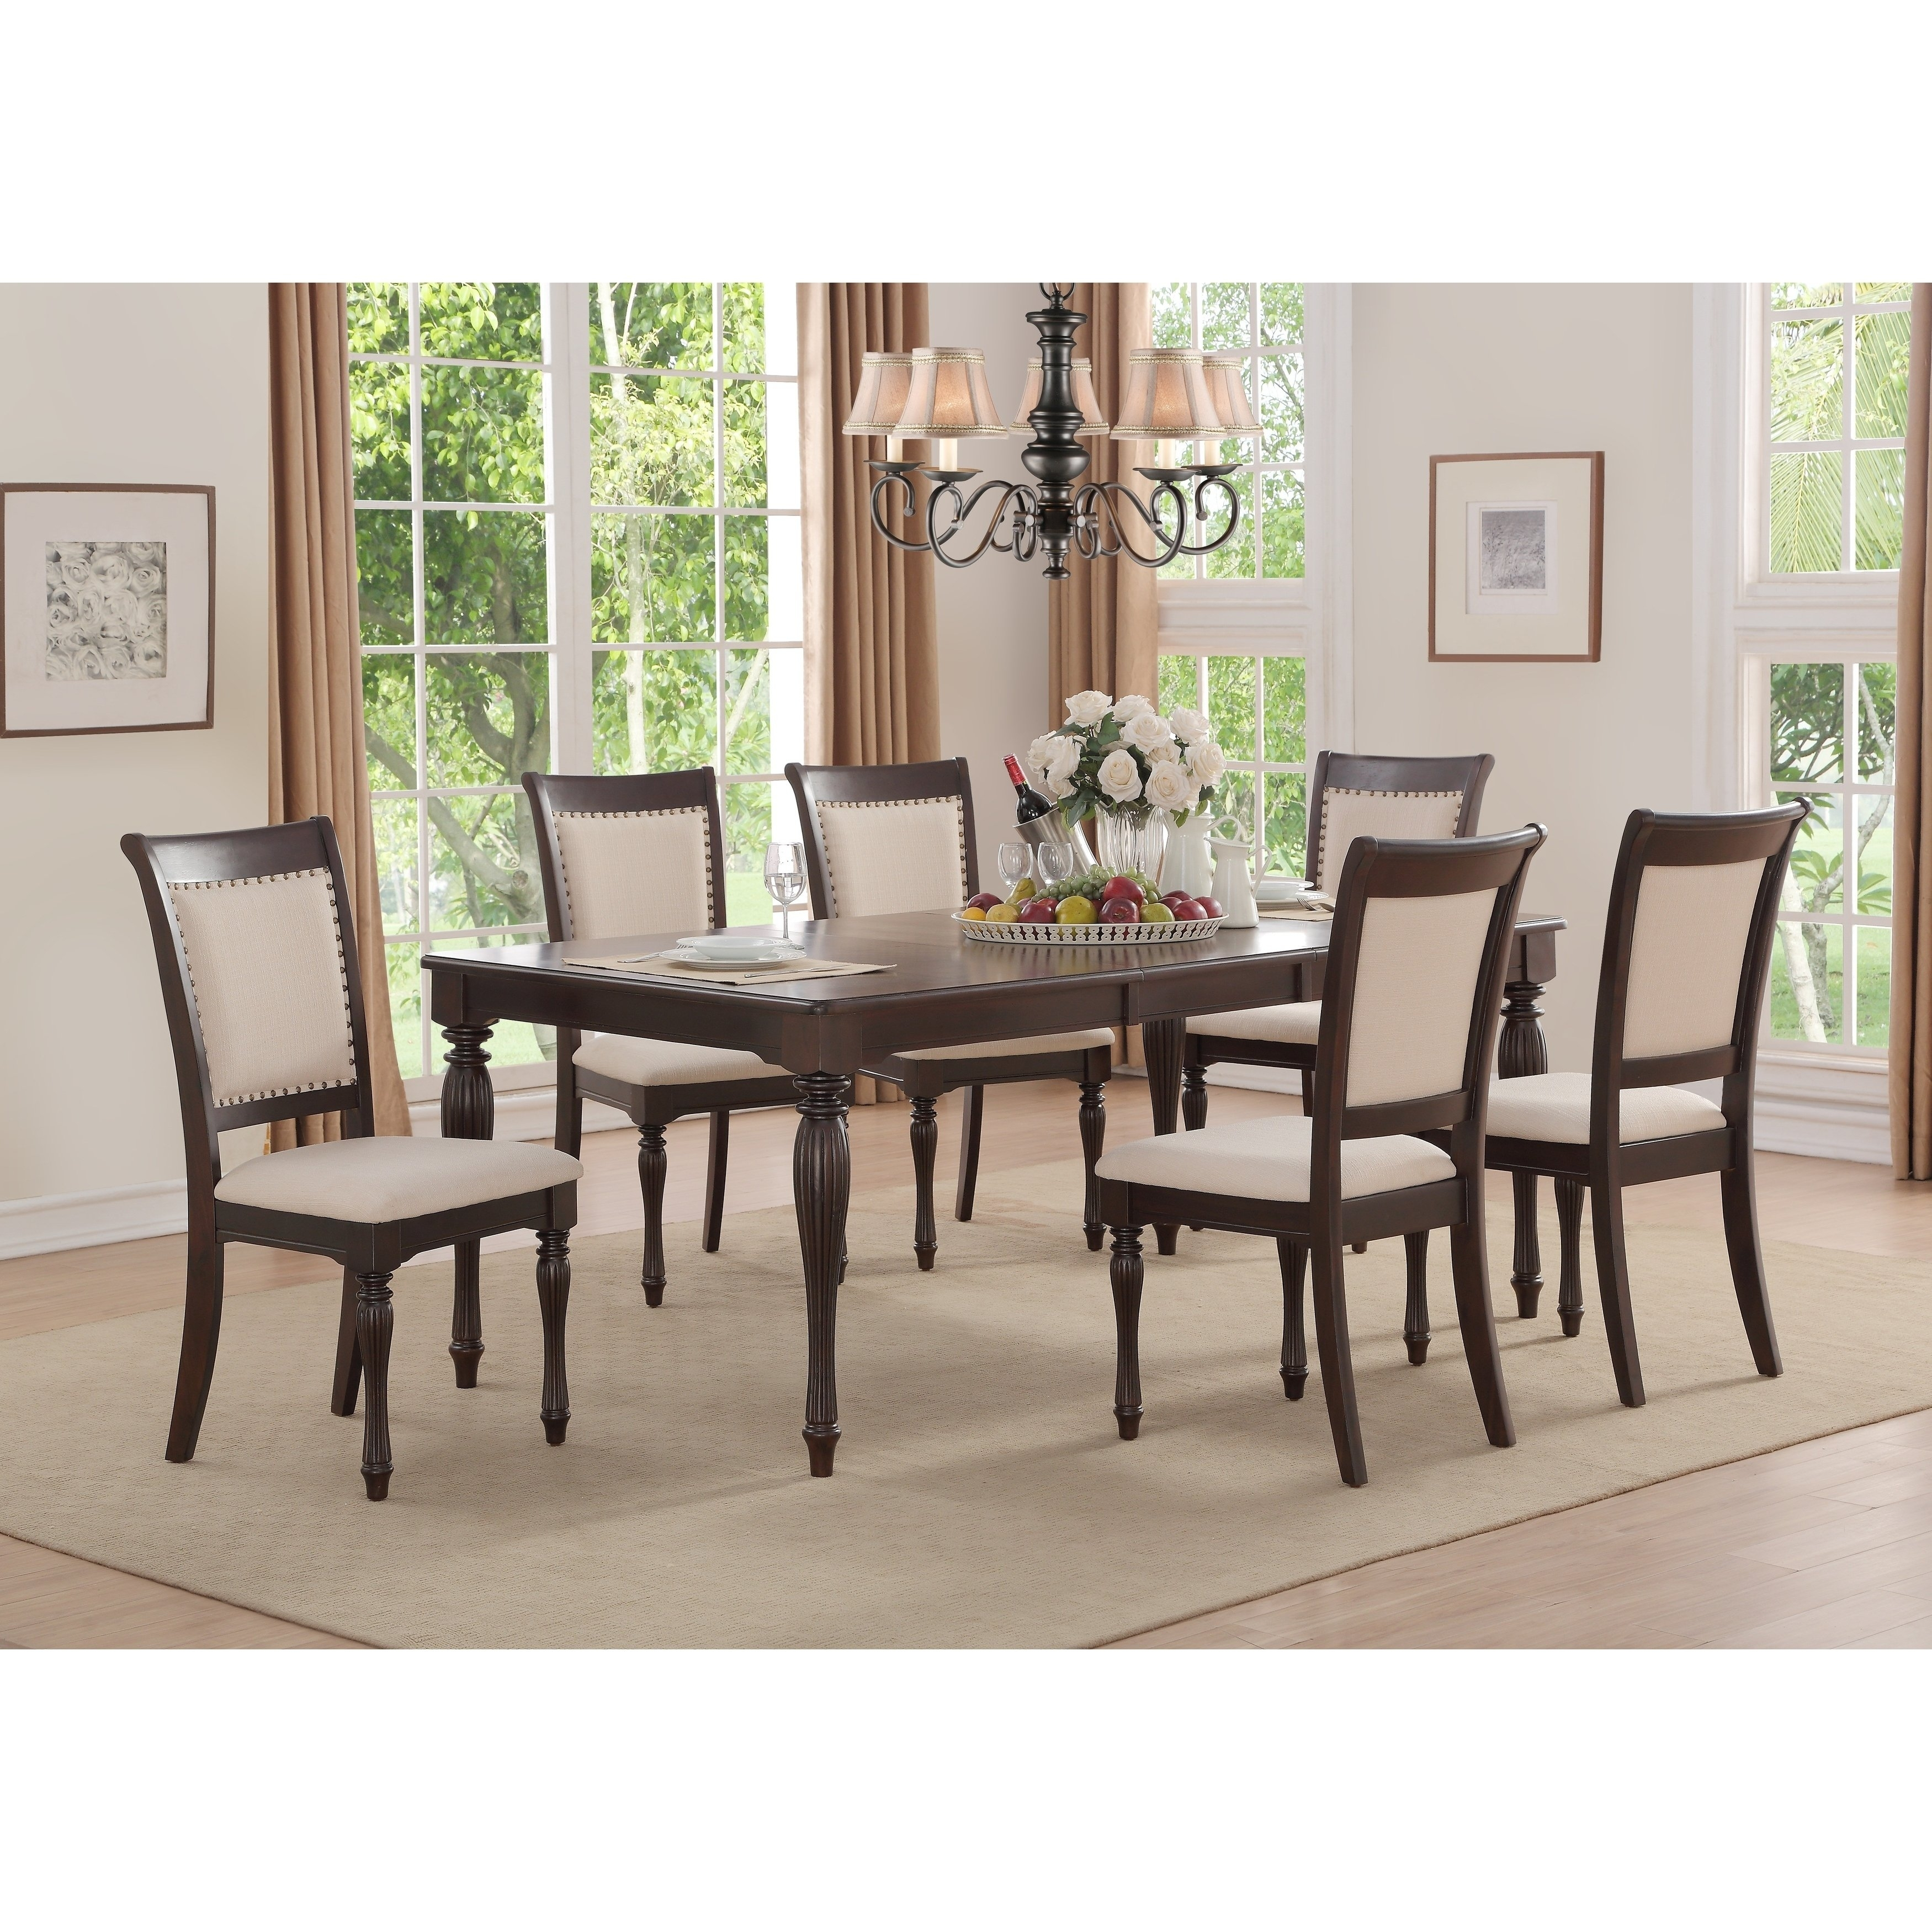 Shop Home Source Penelope Ivory 5 Piece Dining Set With 1 Table And Inside Most Popular Caden 6 Piece Rectangle Dining Sets (Image 17 of 20)